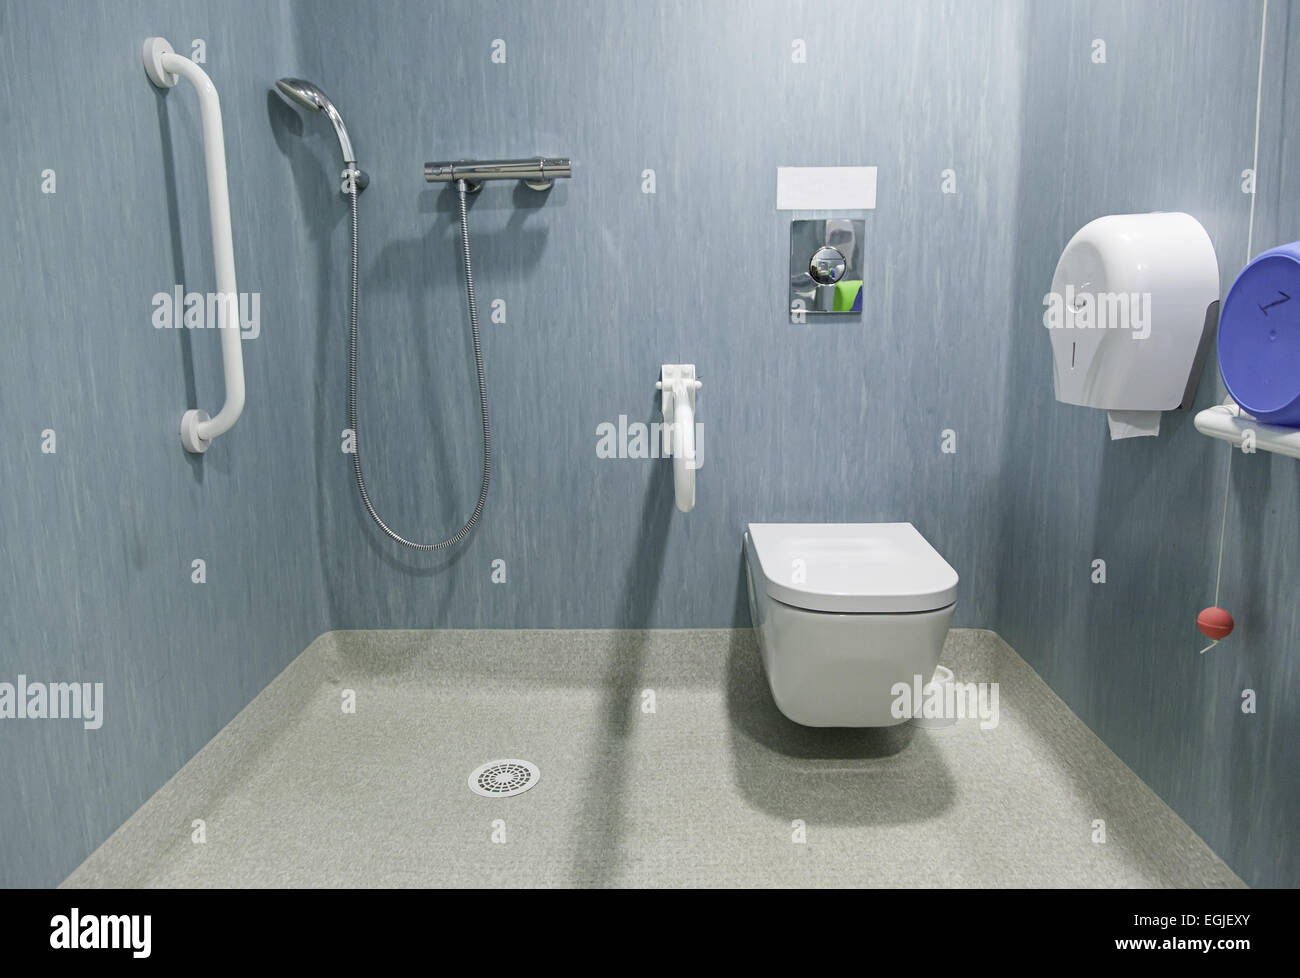 Disabled bathroom in a hospital Stock Photo: 79082835 - Alamy